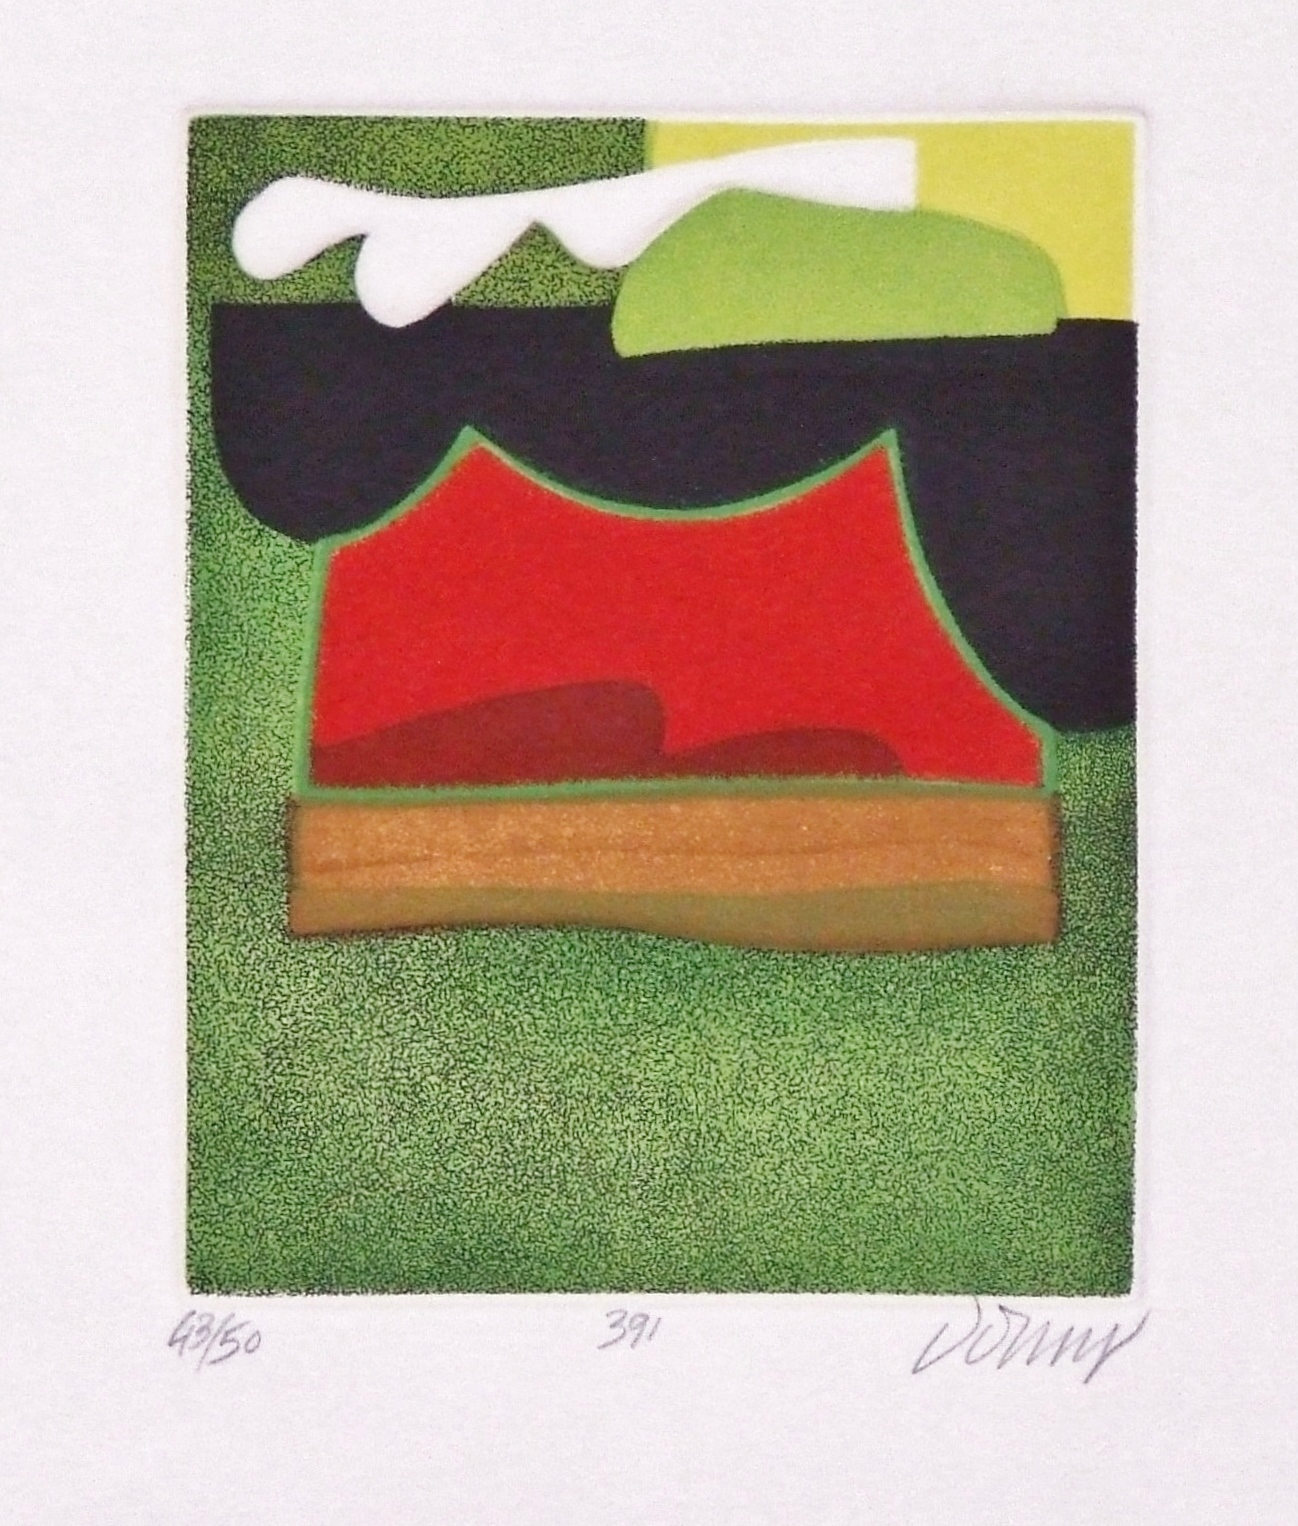 Embosssed colour etching (Aquatinte) titled 391 by Bertrand DORNY (1931) – 33.02 x 25.4 cm